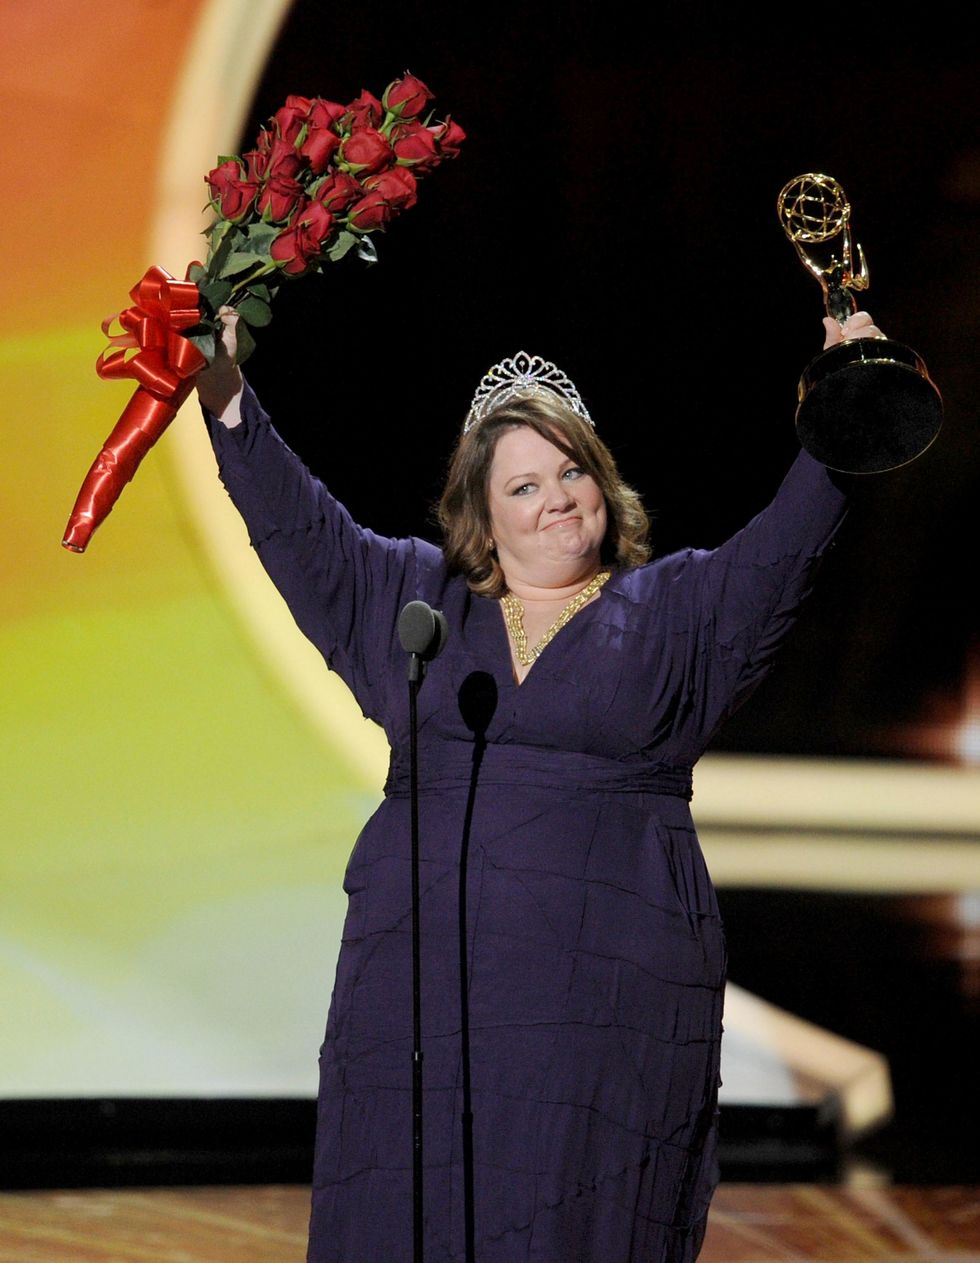 Melissa McCarthy onstage accepting Emmy award for Mike & Molly.